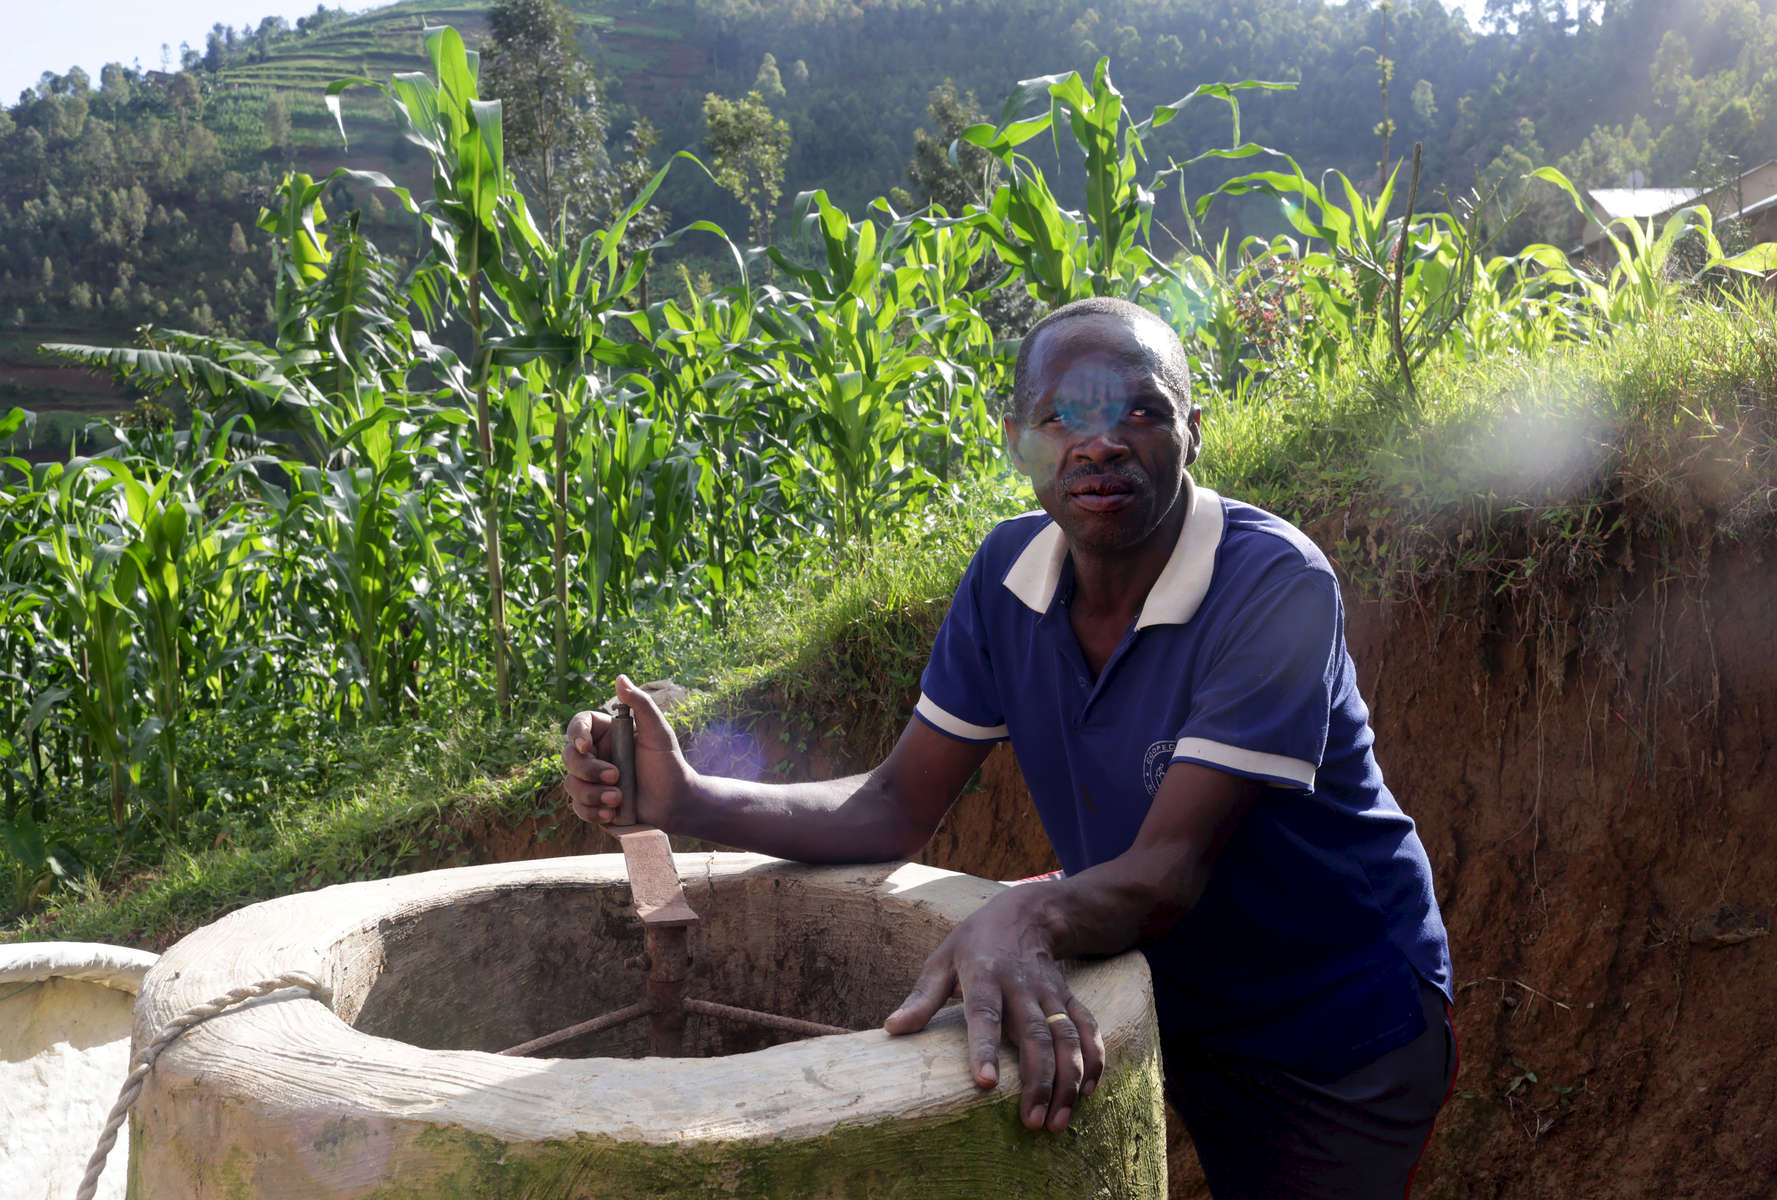 Etiene Twagirayezu, 60, talks about his biogas digester in front of his home in Rutabo, Rwanda, on November 18, 2017. Twagirayezu says that before his digester, he'd spend up to 3 hours a day gathering 10 kilograms of wood, and saw kids get injured climbing trees and be late to school doing the same. He added he was happy his workload at home was reduced due to being able to use his cow's and pig's poo instead of wood as fuel, as well as about the resulting lessening of deforestation. Nearly half of all Rwandans live in poverty, relying on small-scale farming for survival without gas or electricity. With so many women and children spending hours of the day foraging for wood used for cooking and light, often damaging their eyes, lungs, the forests and atmosphere, a little inventiveness helps. Enter cow and enter pig — not just as a source of food, but also the heat needed to cook it. Or more specifically, their poo — the fuel fed to a biogas digester, a tank that coverts organic waste into methane. Photographs by: Yana Paskova